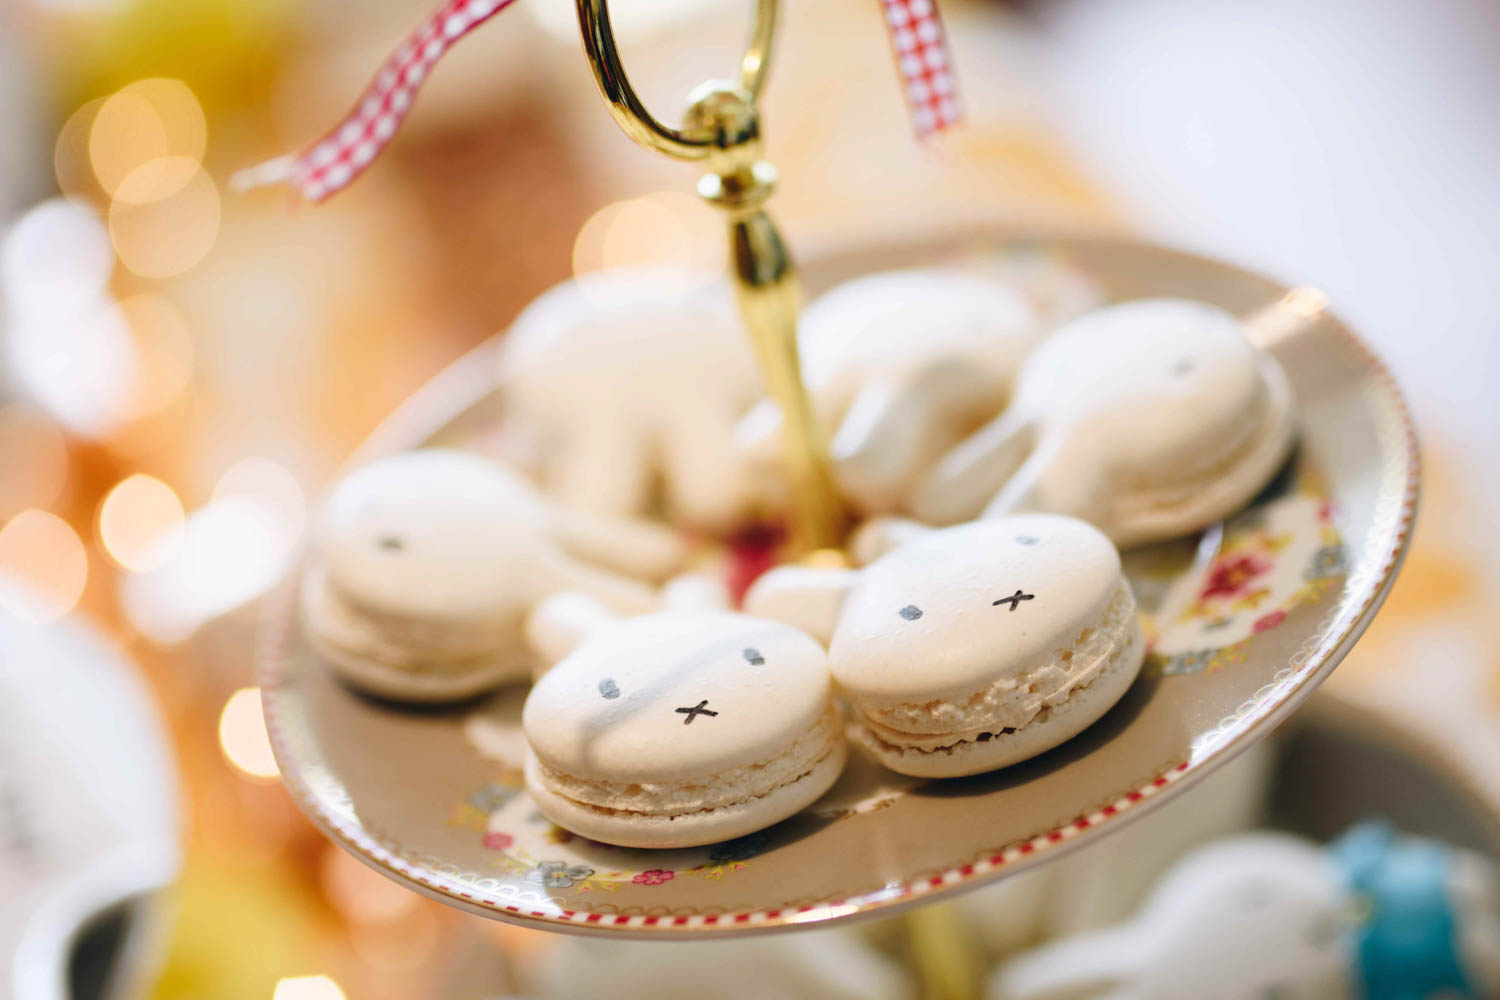 Miffy inspired macarons for Lotta's 1st birthday party at Sandbank Singapore. Super cute idea!